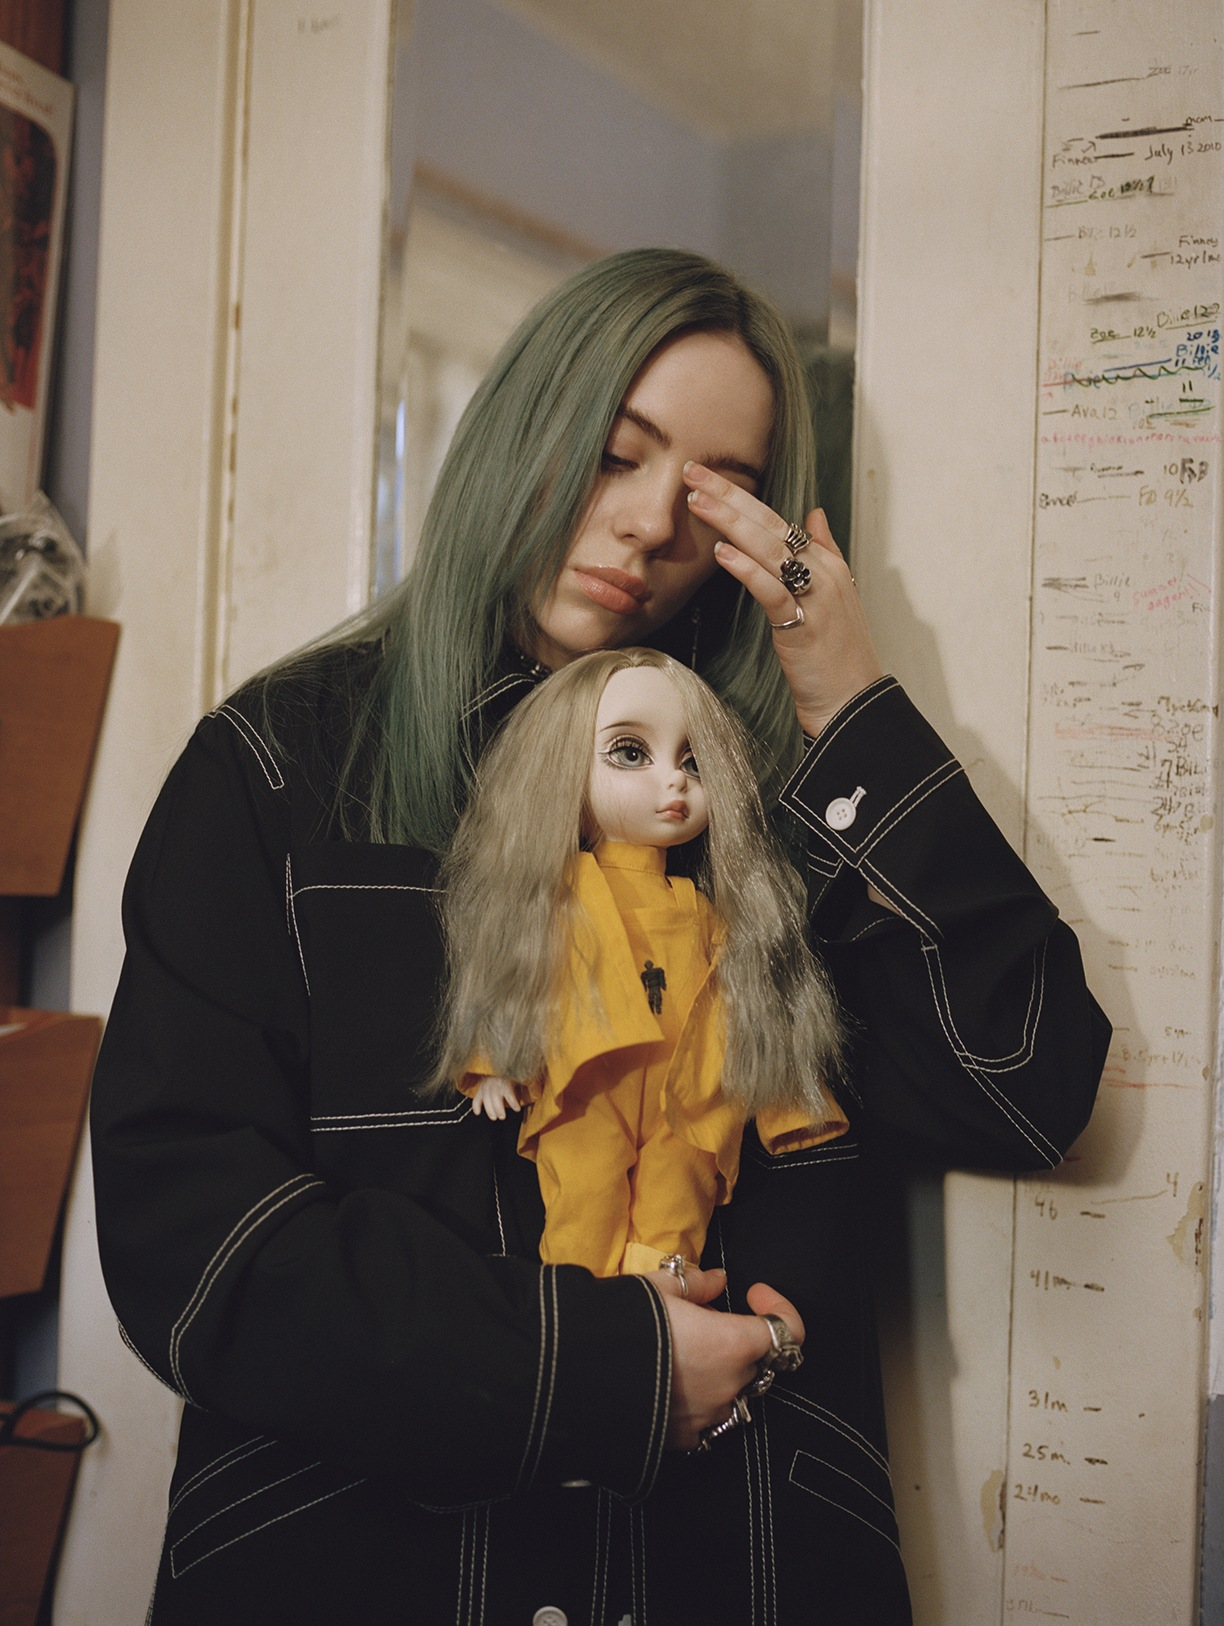 Who's Billie Eilish?